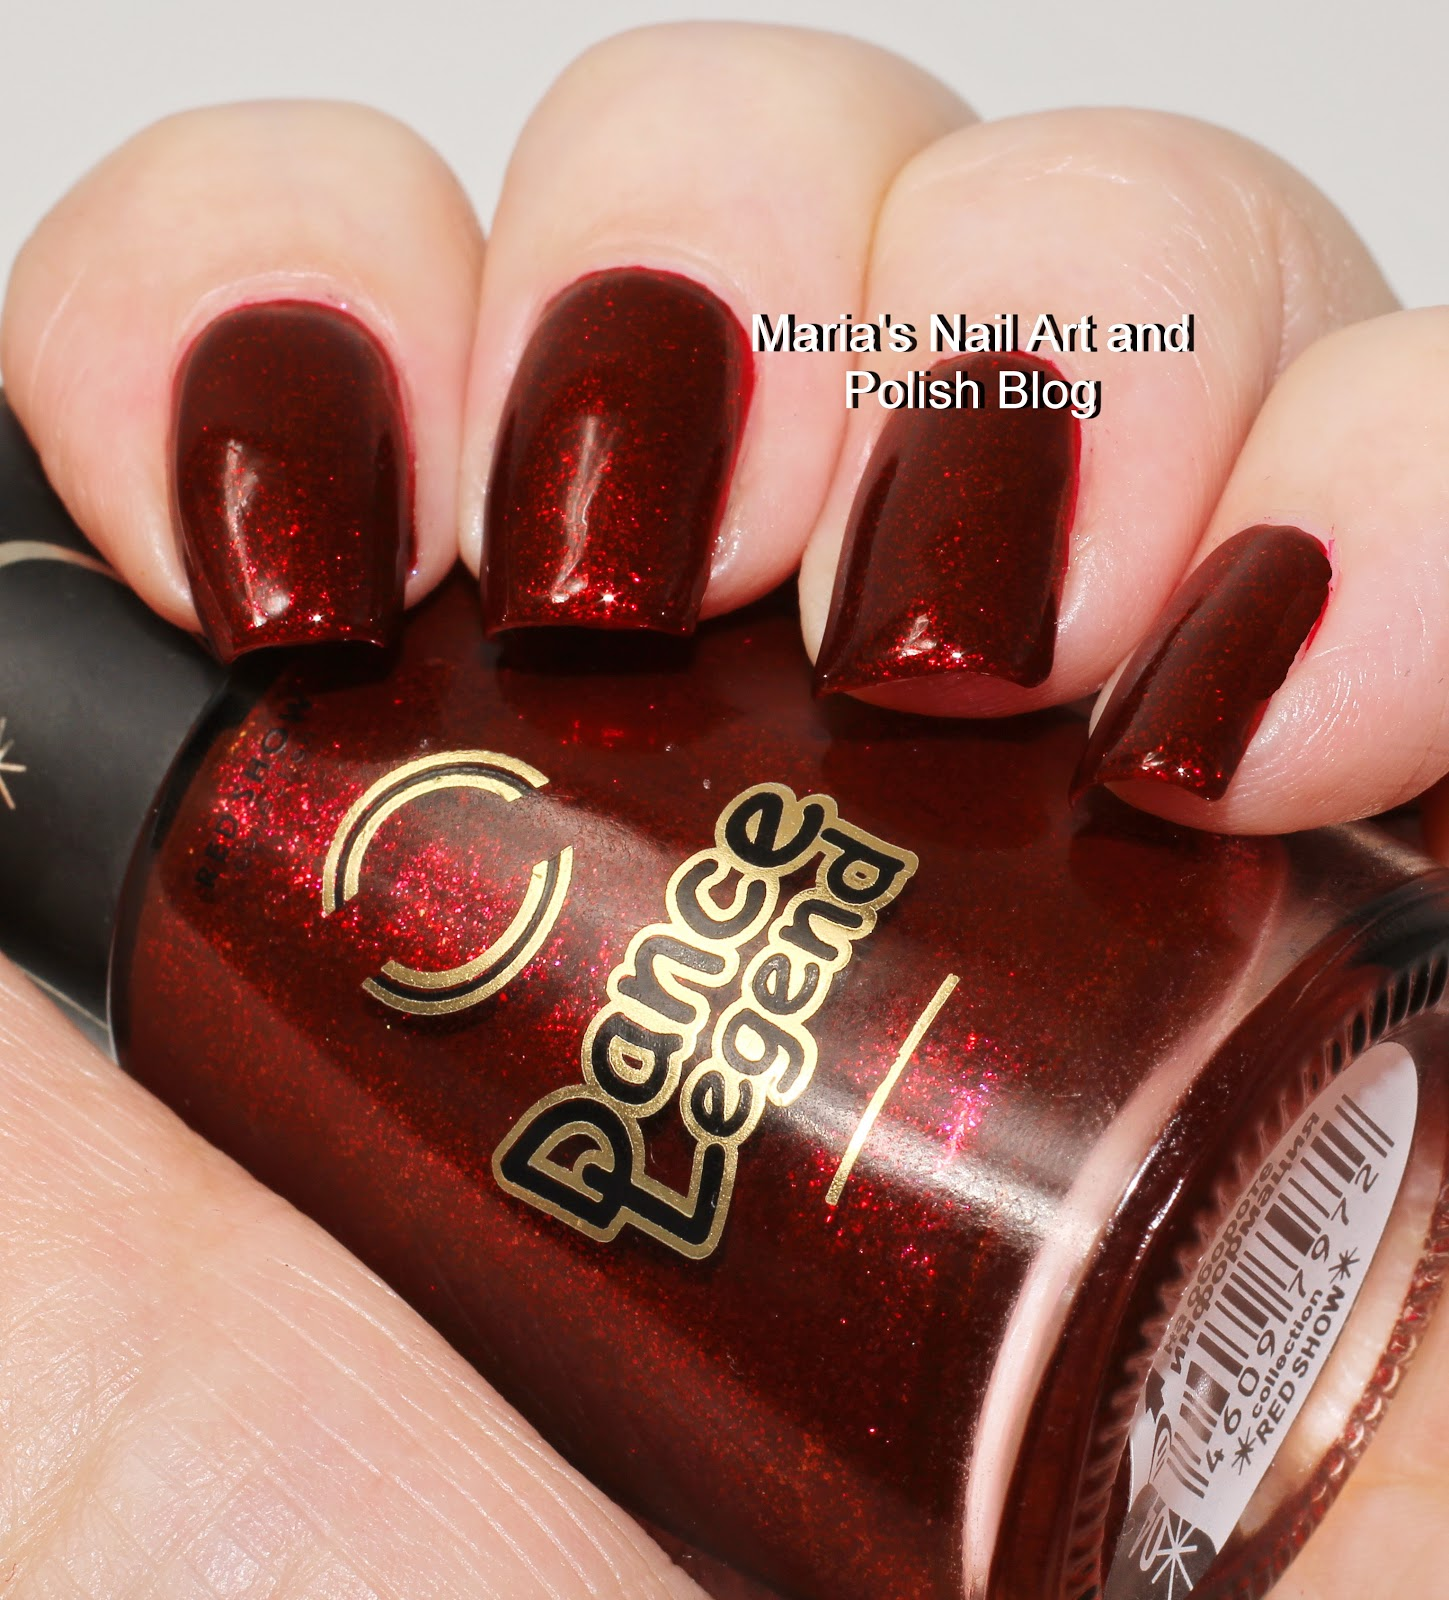 Marias Nail Art And Polish Blog: Dance Legend Red Show 04